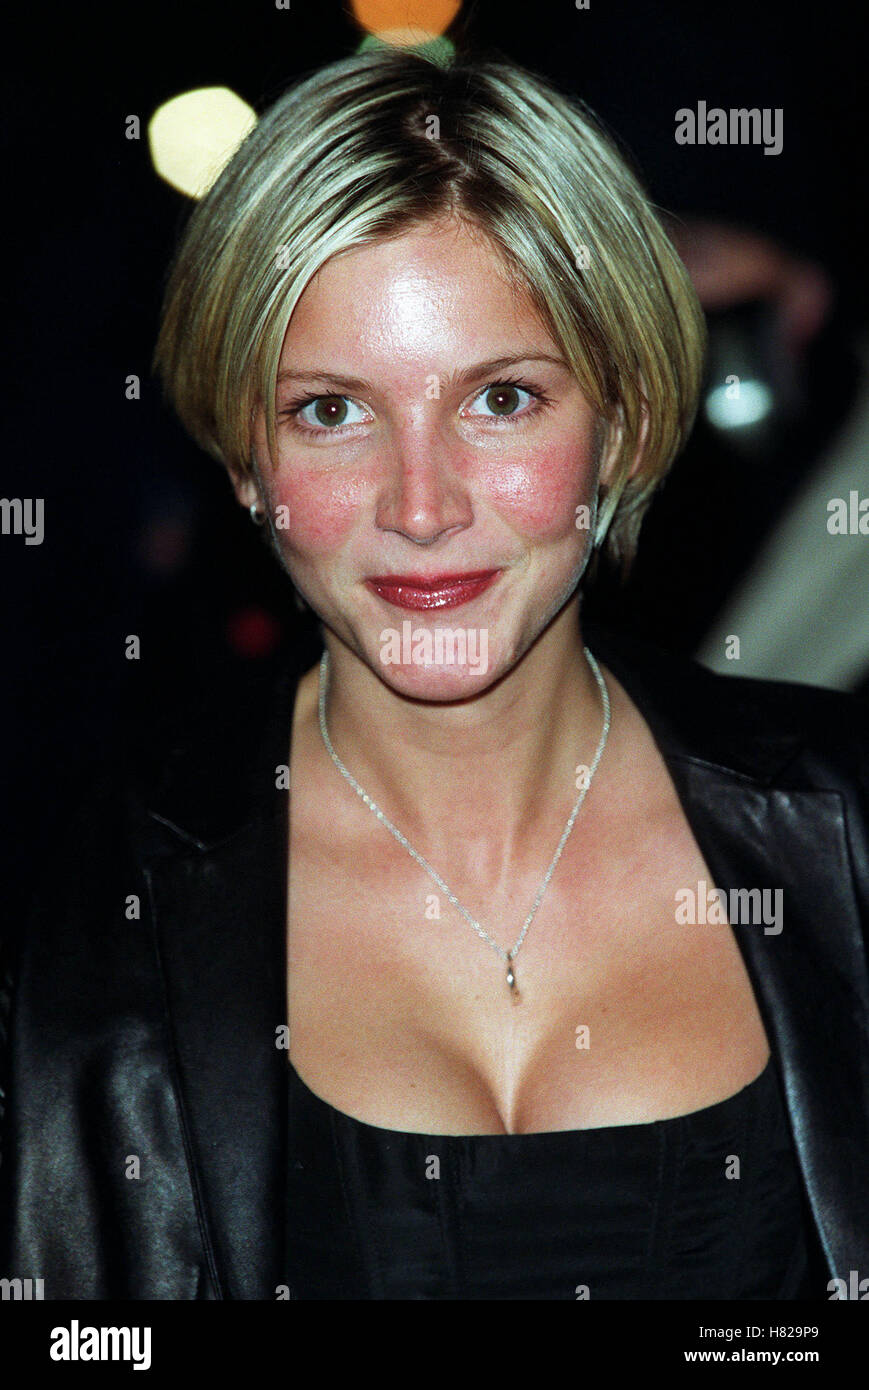 Lisa Faulkner nudes (72 foto and video), Sexy, Leaked, Boobs, cleavage 2018